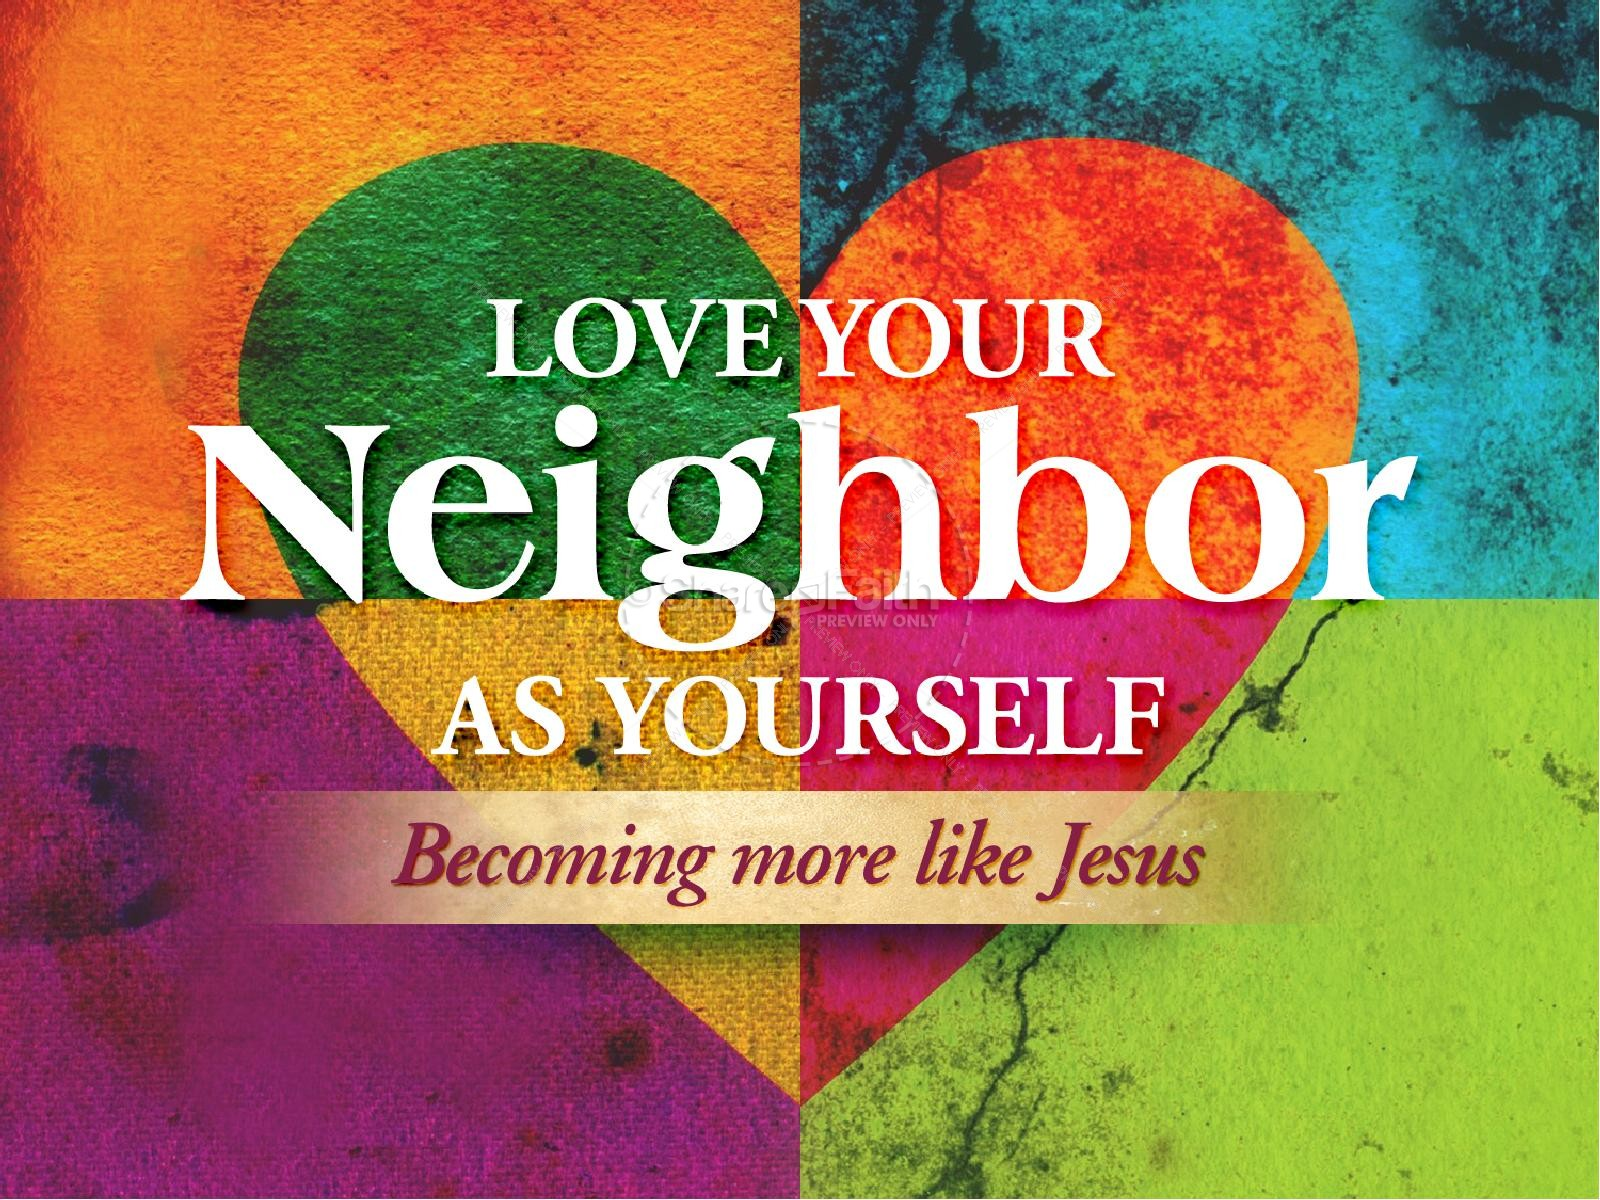 Love your neighbor as yourself powerpoint template powerpoint love your neighbor as yourself powerpoint template alramifo Image collections